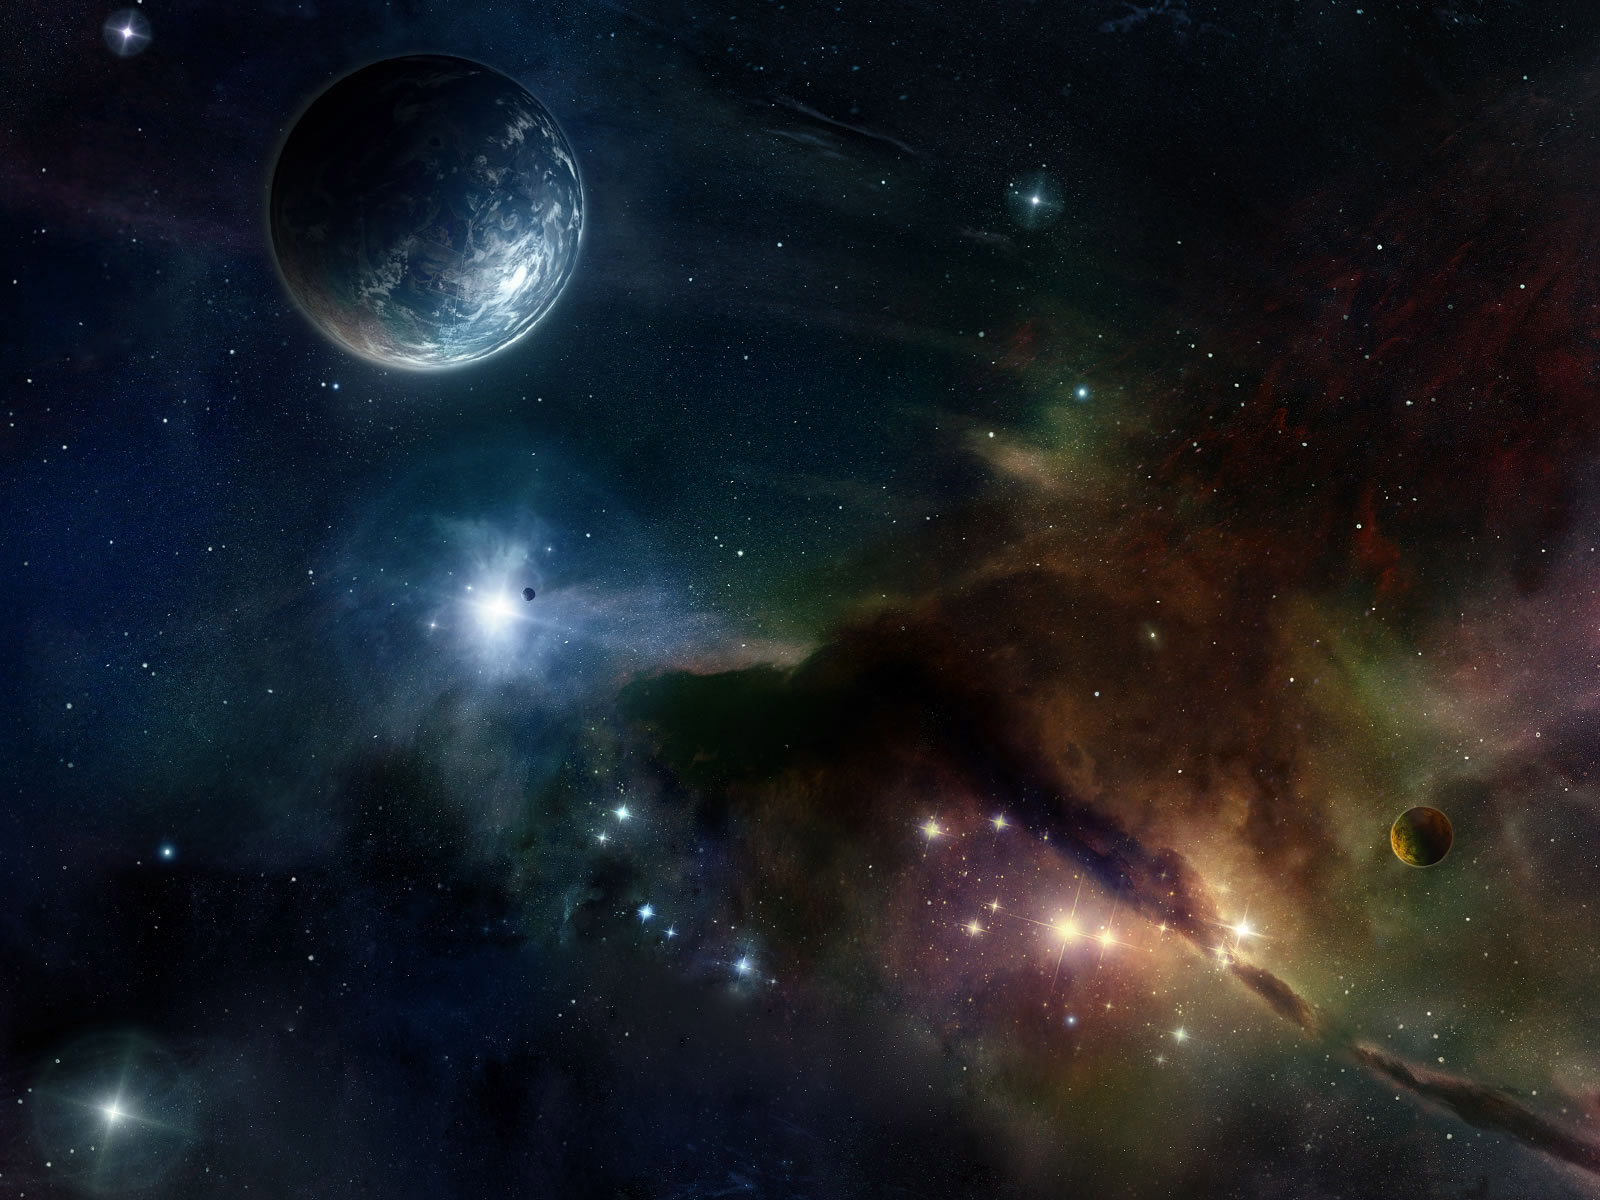 tracy gibson space art hd